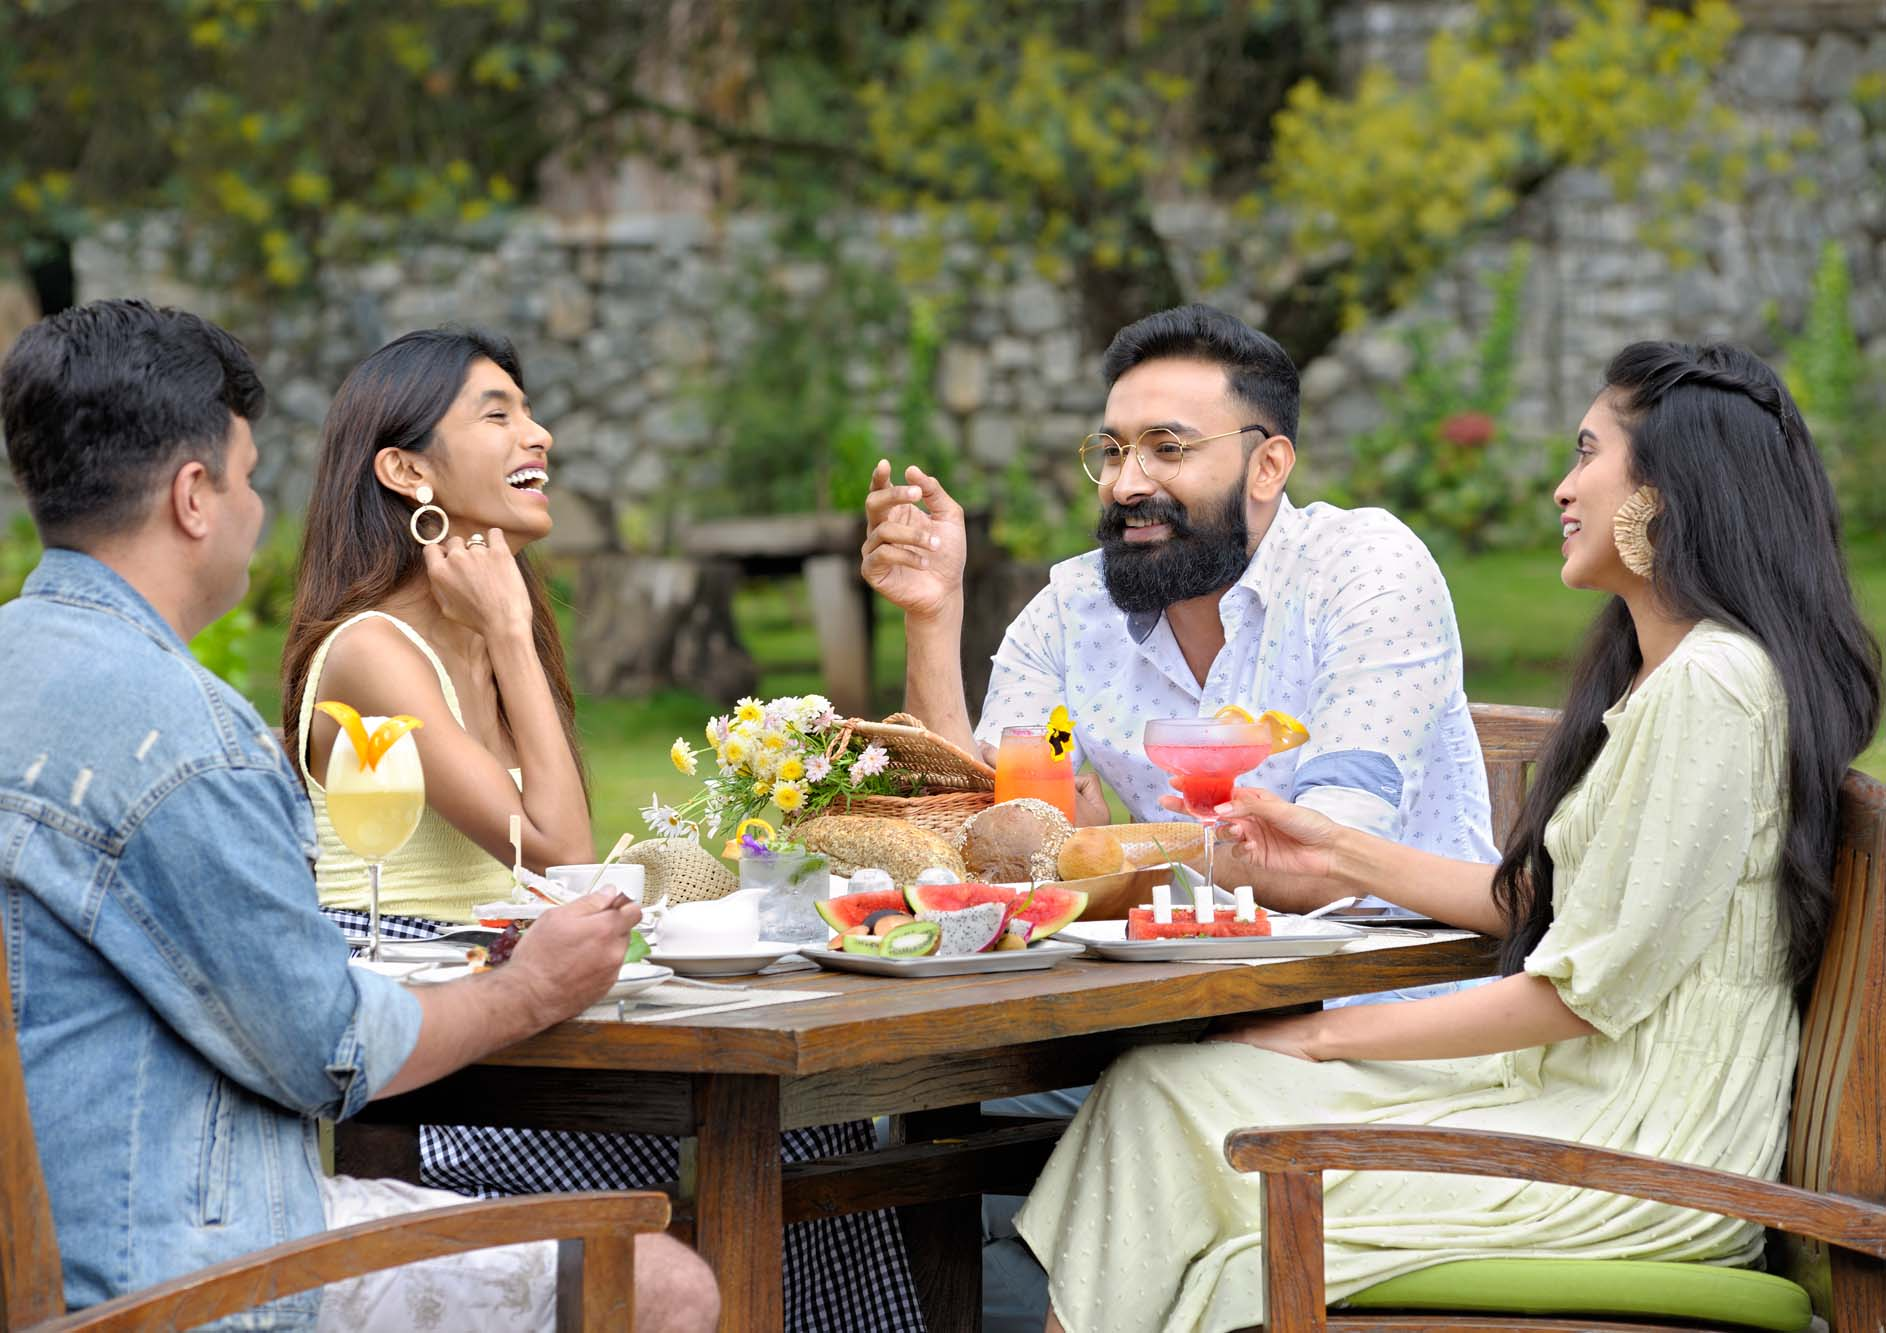 Cheerful-young-friends-enjoying-food-and-having-fun-together